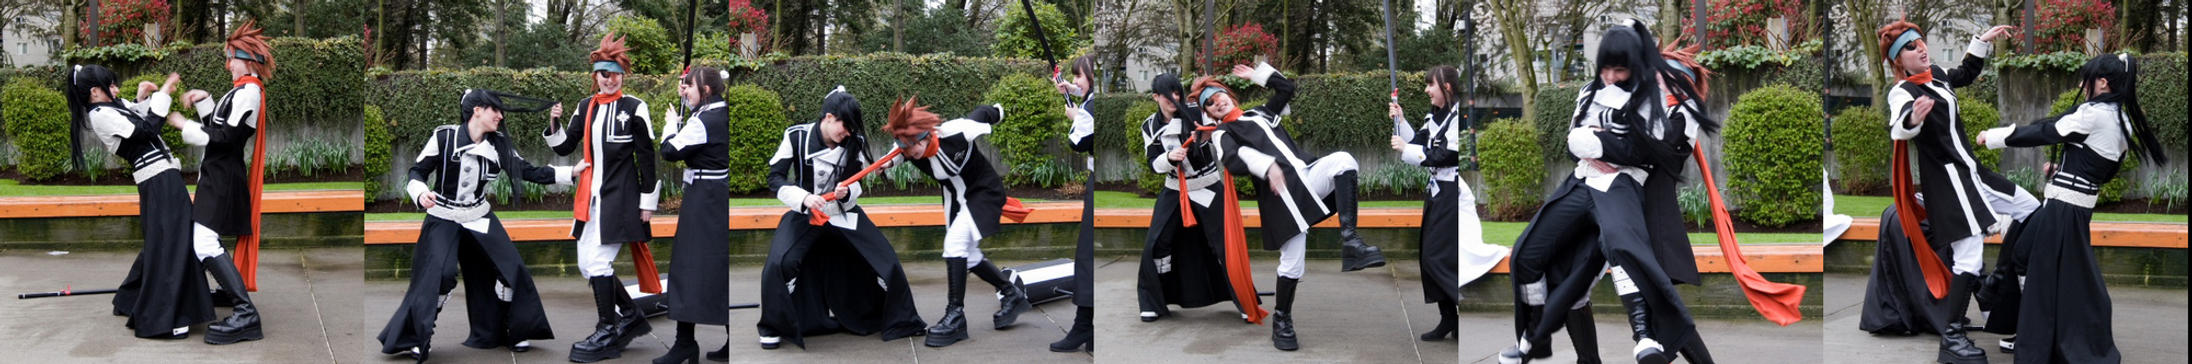 Epic Battle- Lavi vs. Kanda by twinfools